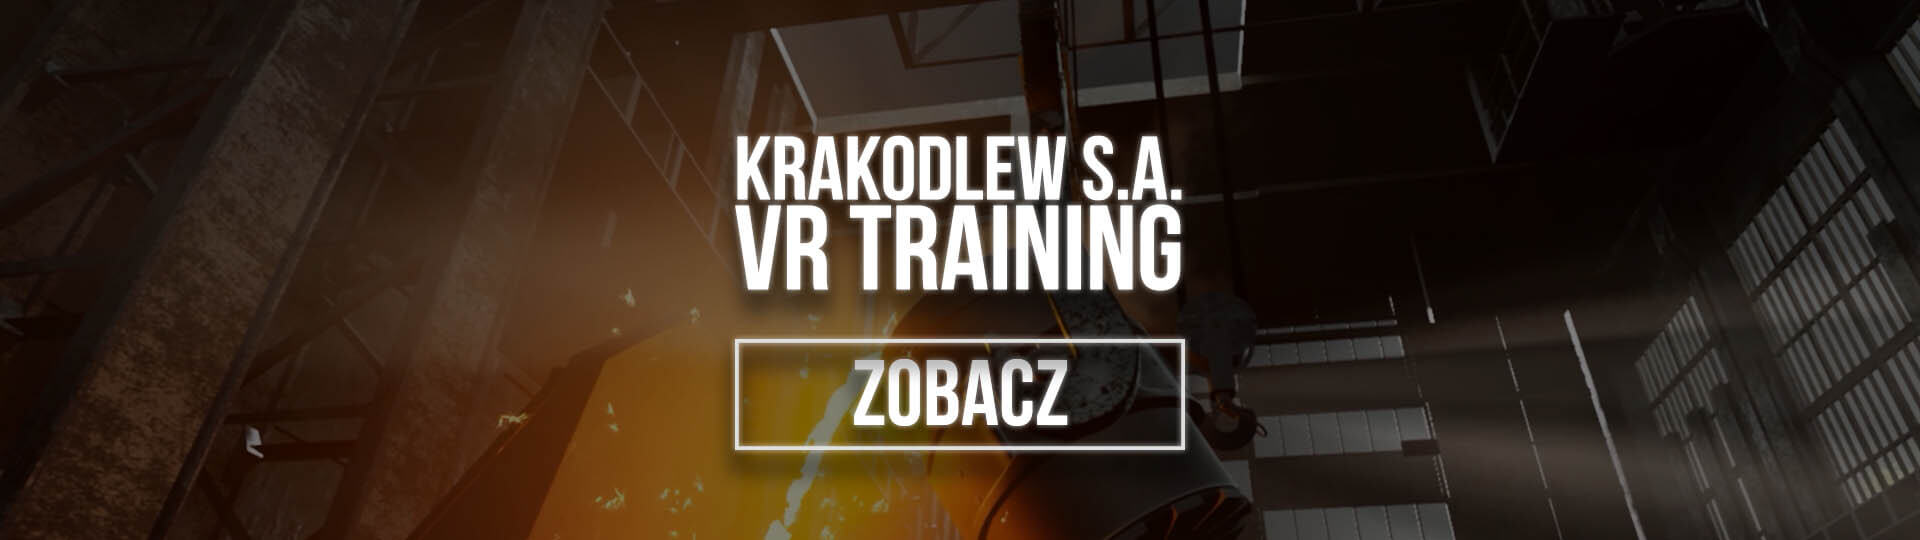 krakodlew vr training